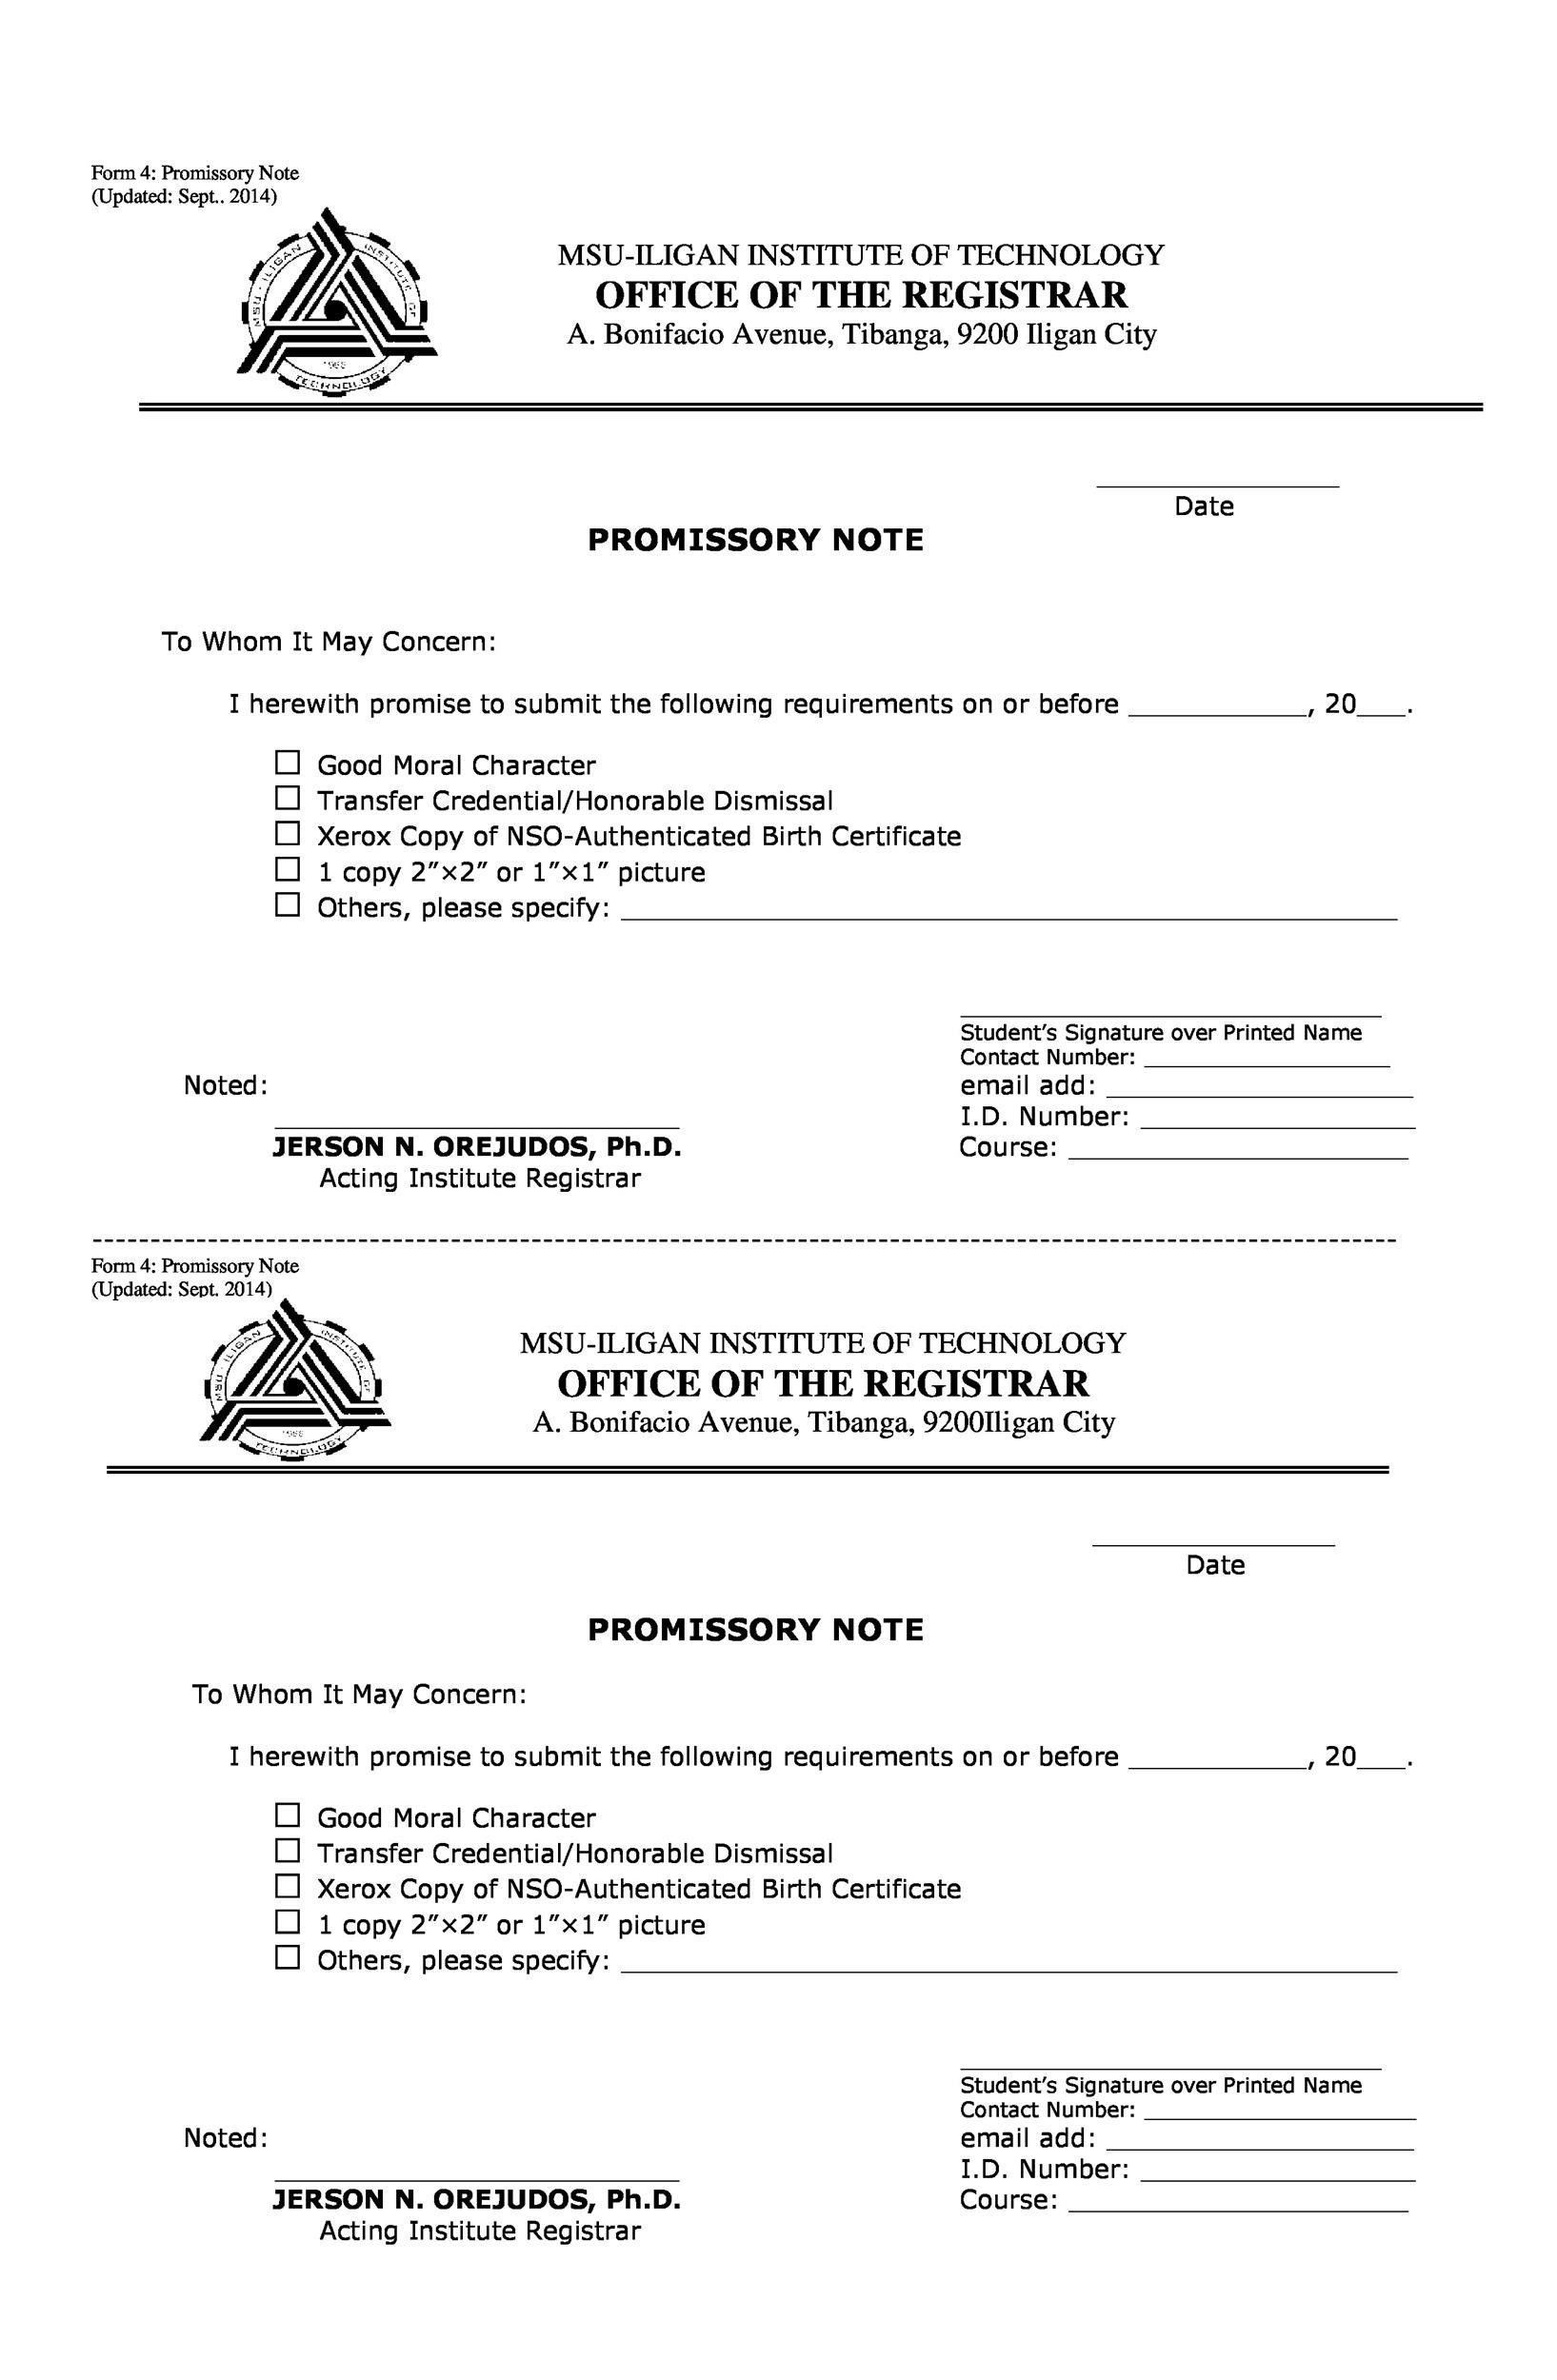 promissory note sample pdf 45 FREE Promissory Note Templates